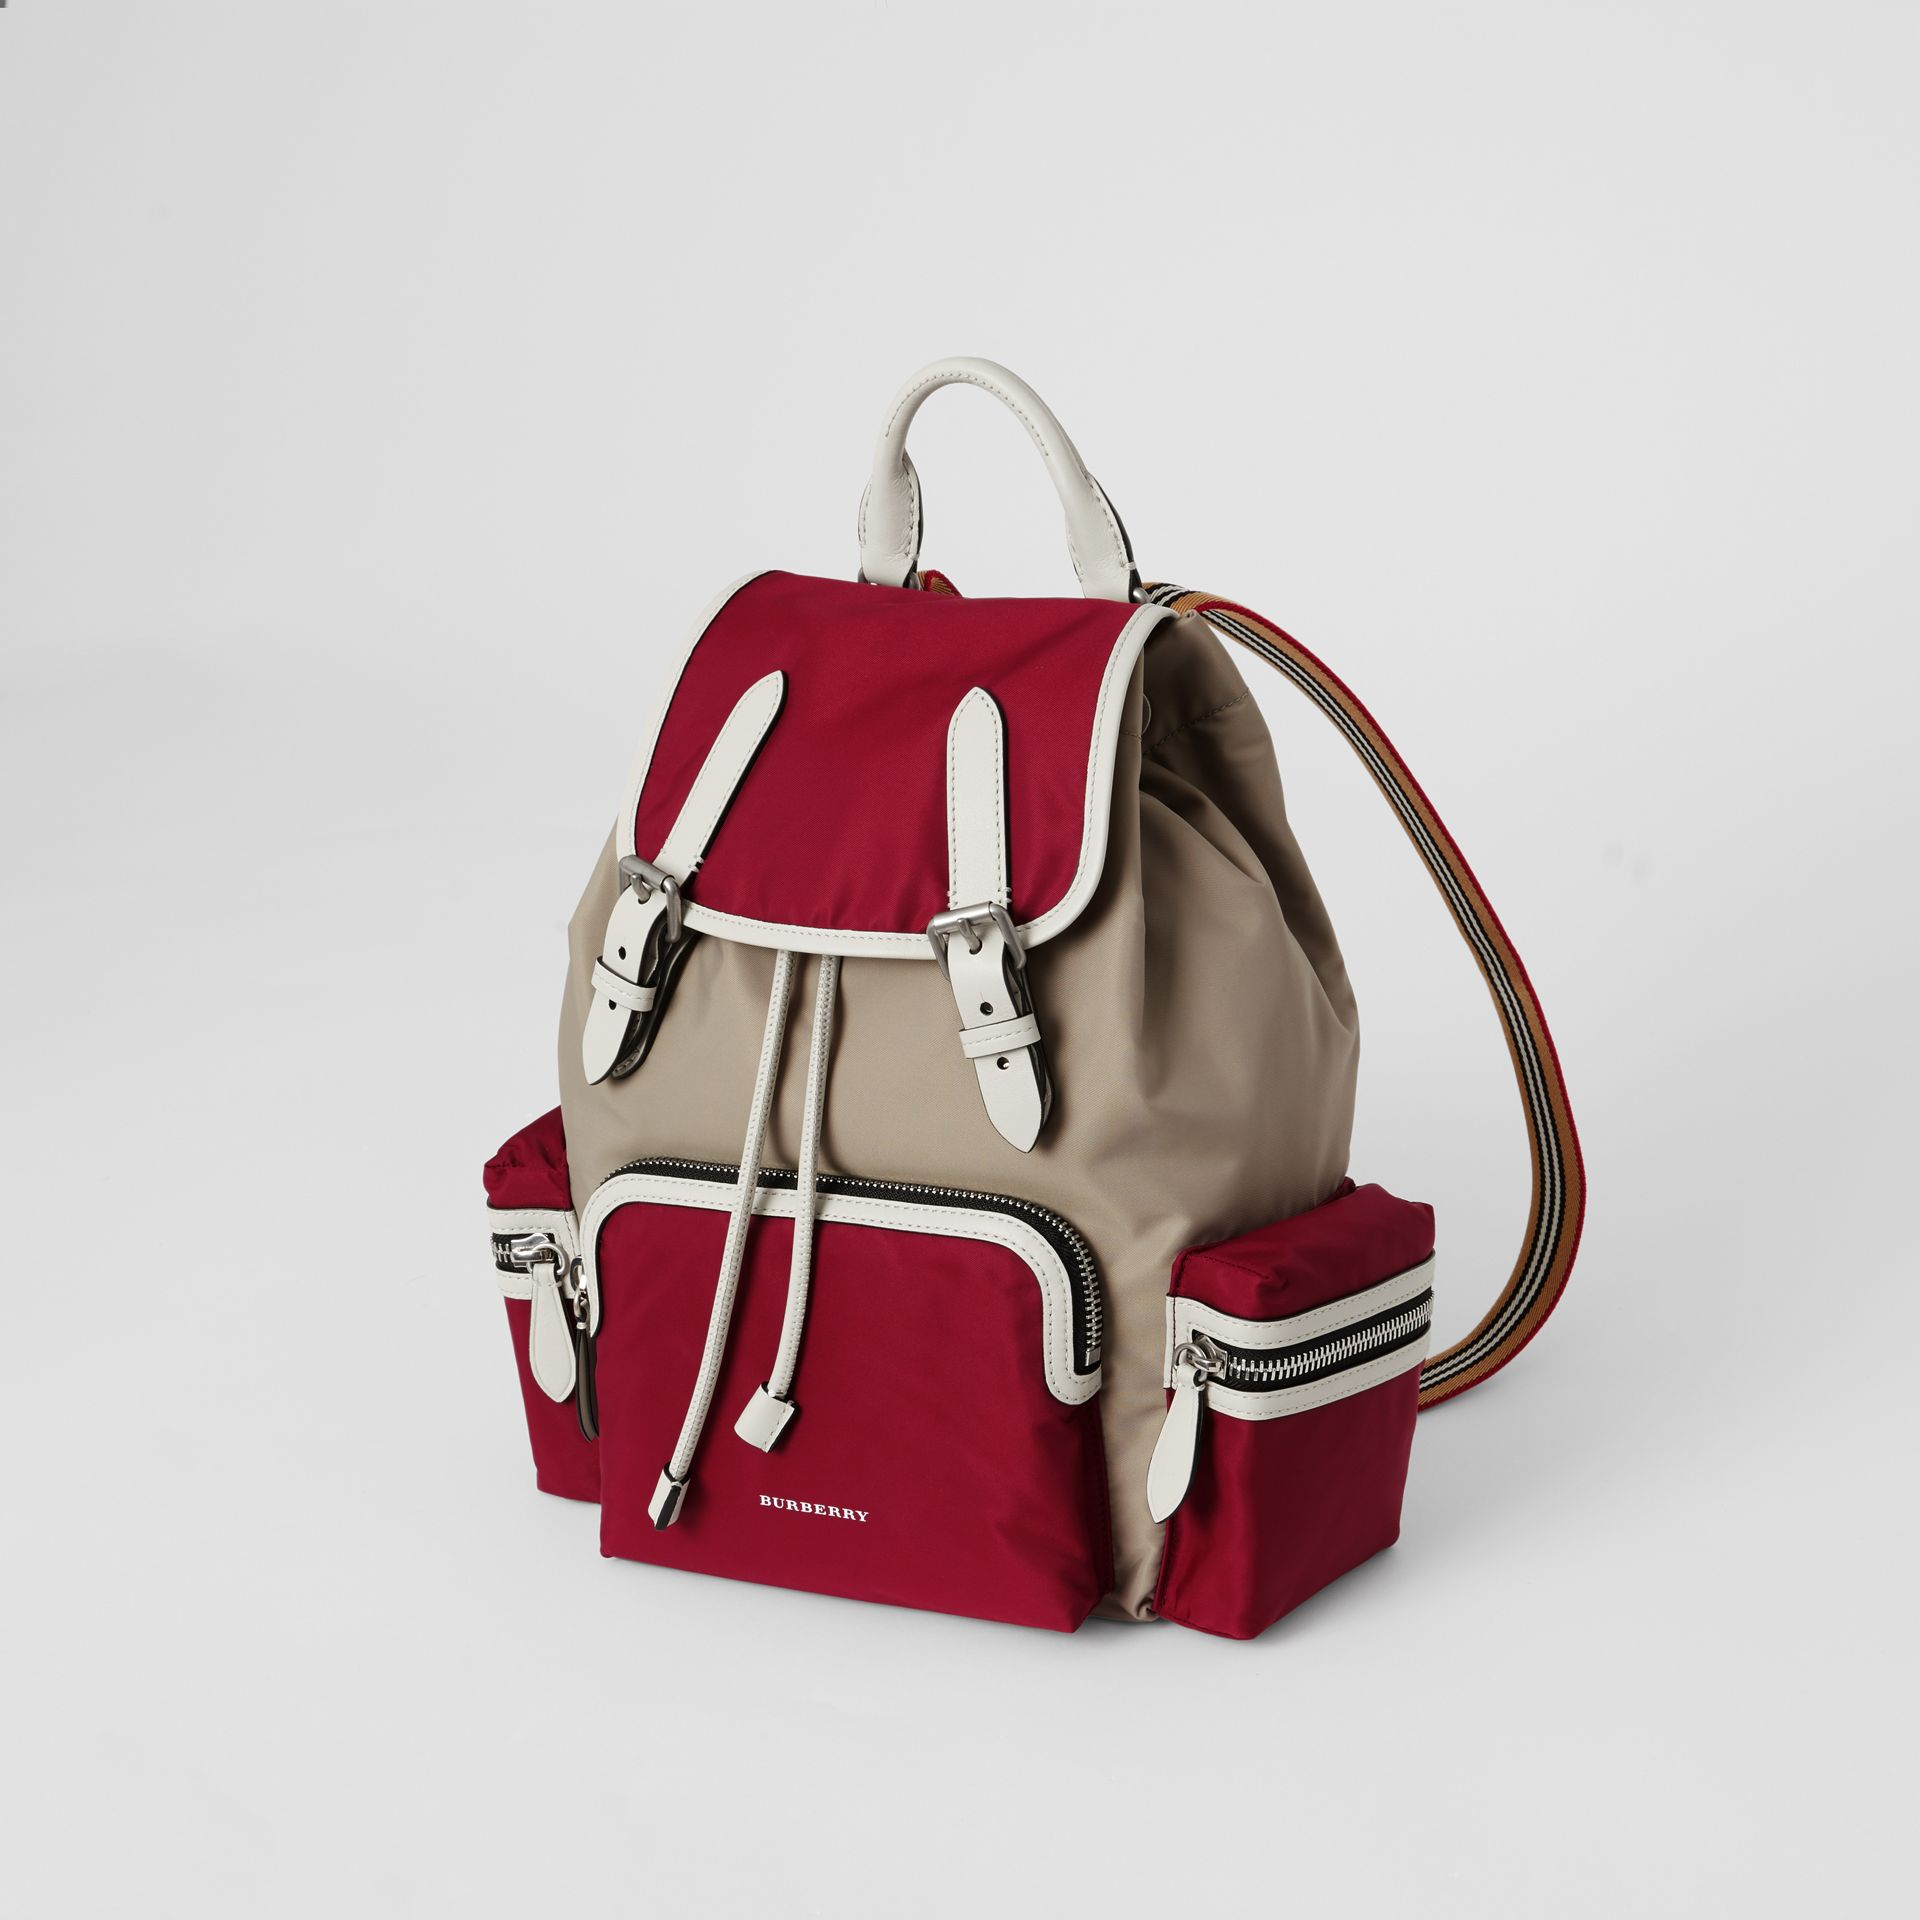 Sac The Rucksack moyen en nylon color-block et cuir (Carmin) - Femme | Burberry - photo de la galerie 4